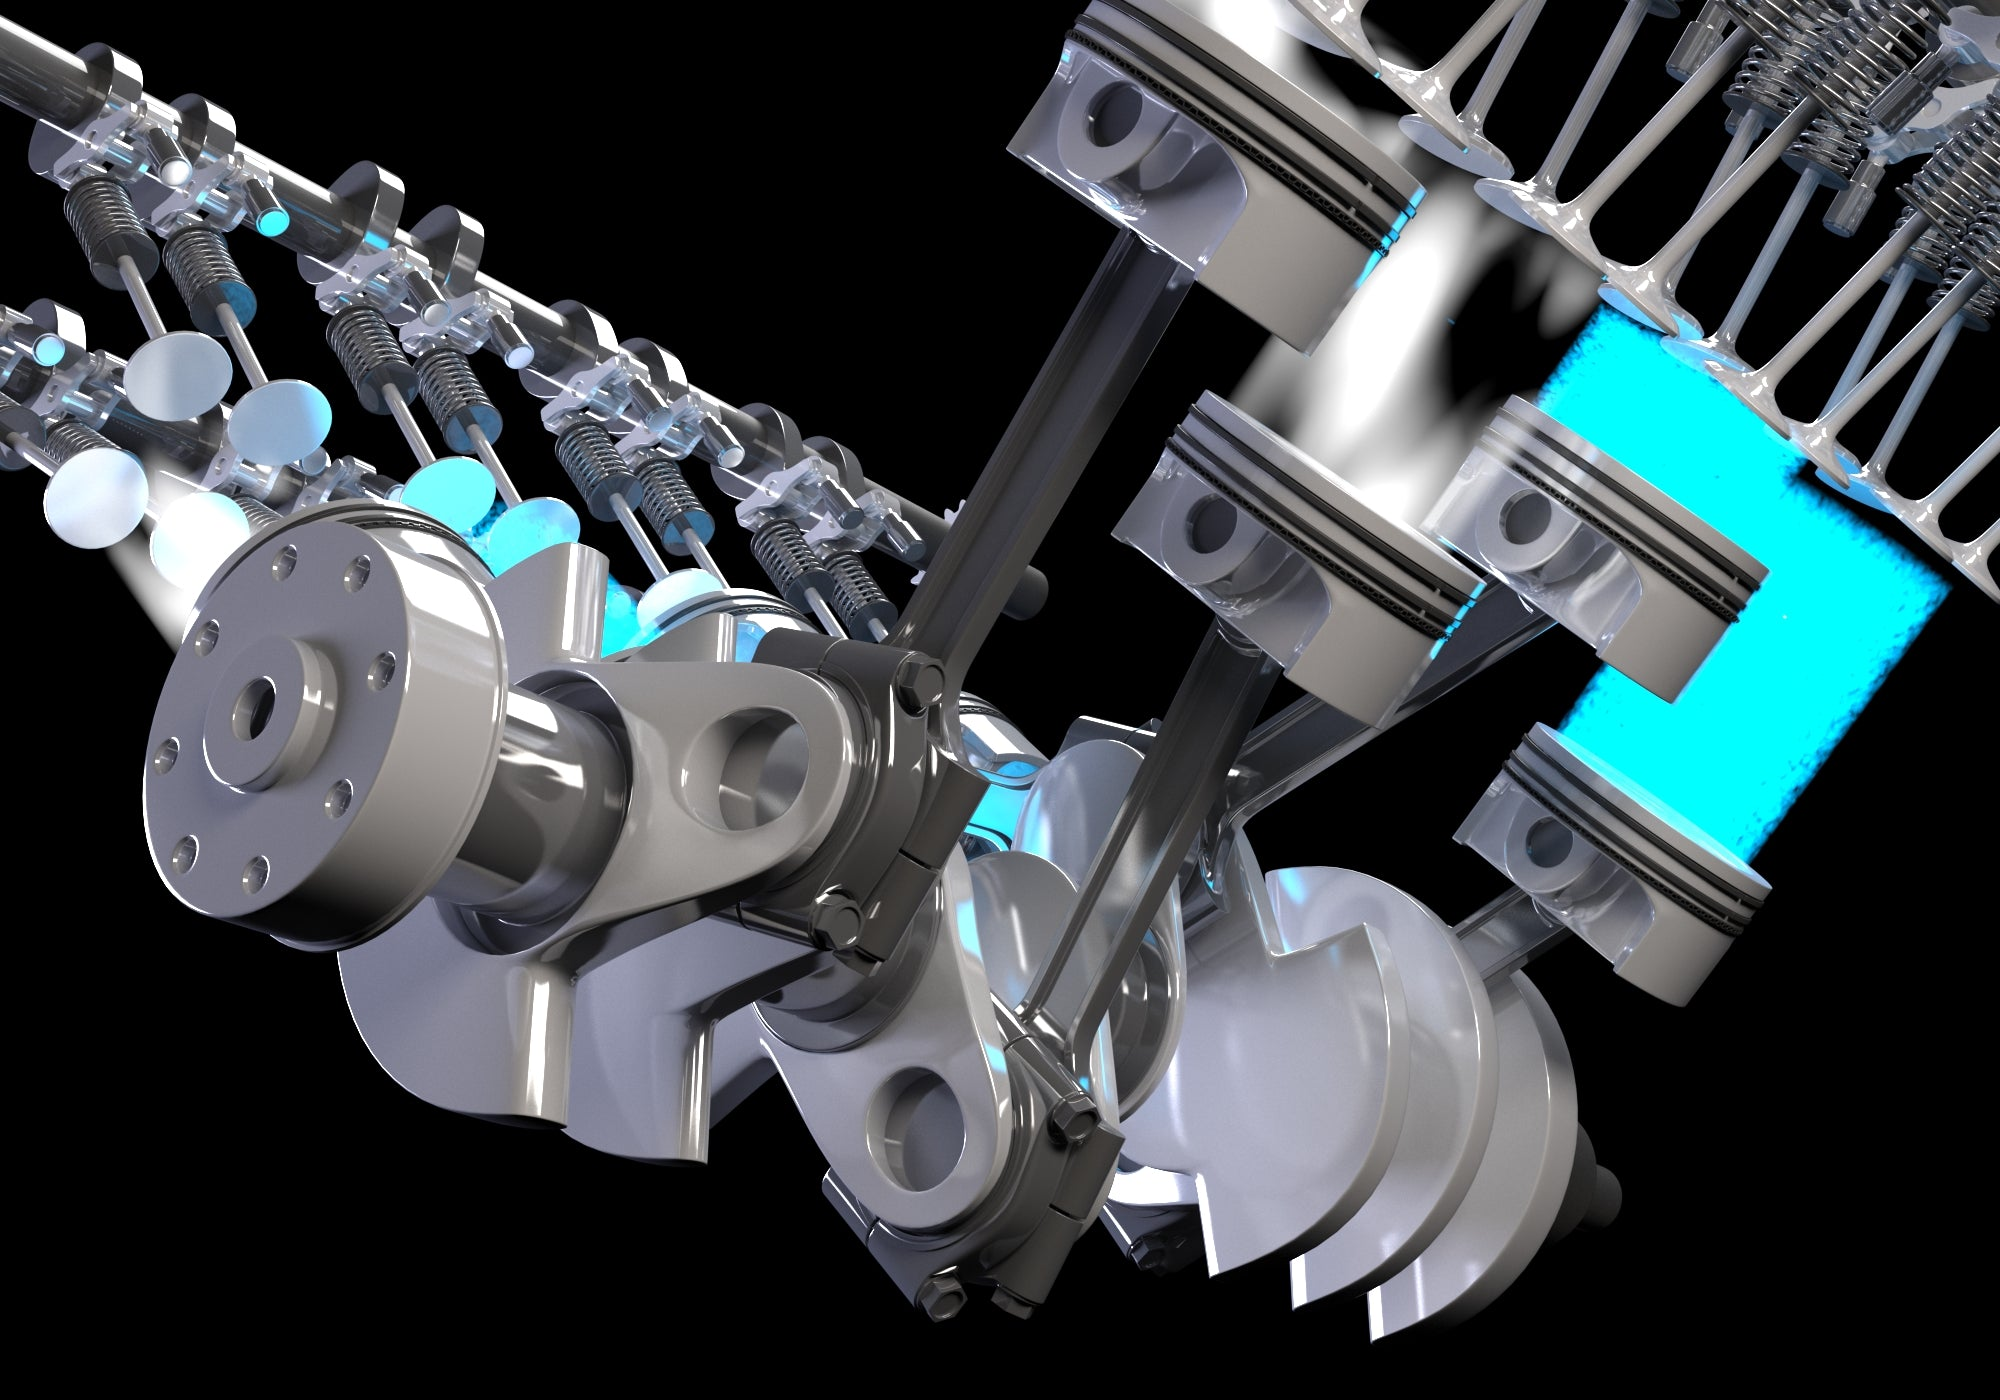 Animated V8 Engine Gasoline Ignition